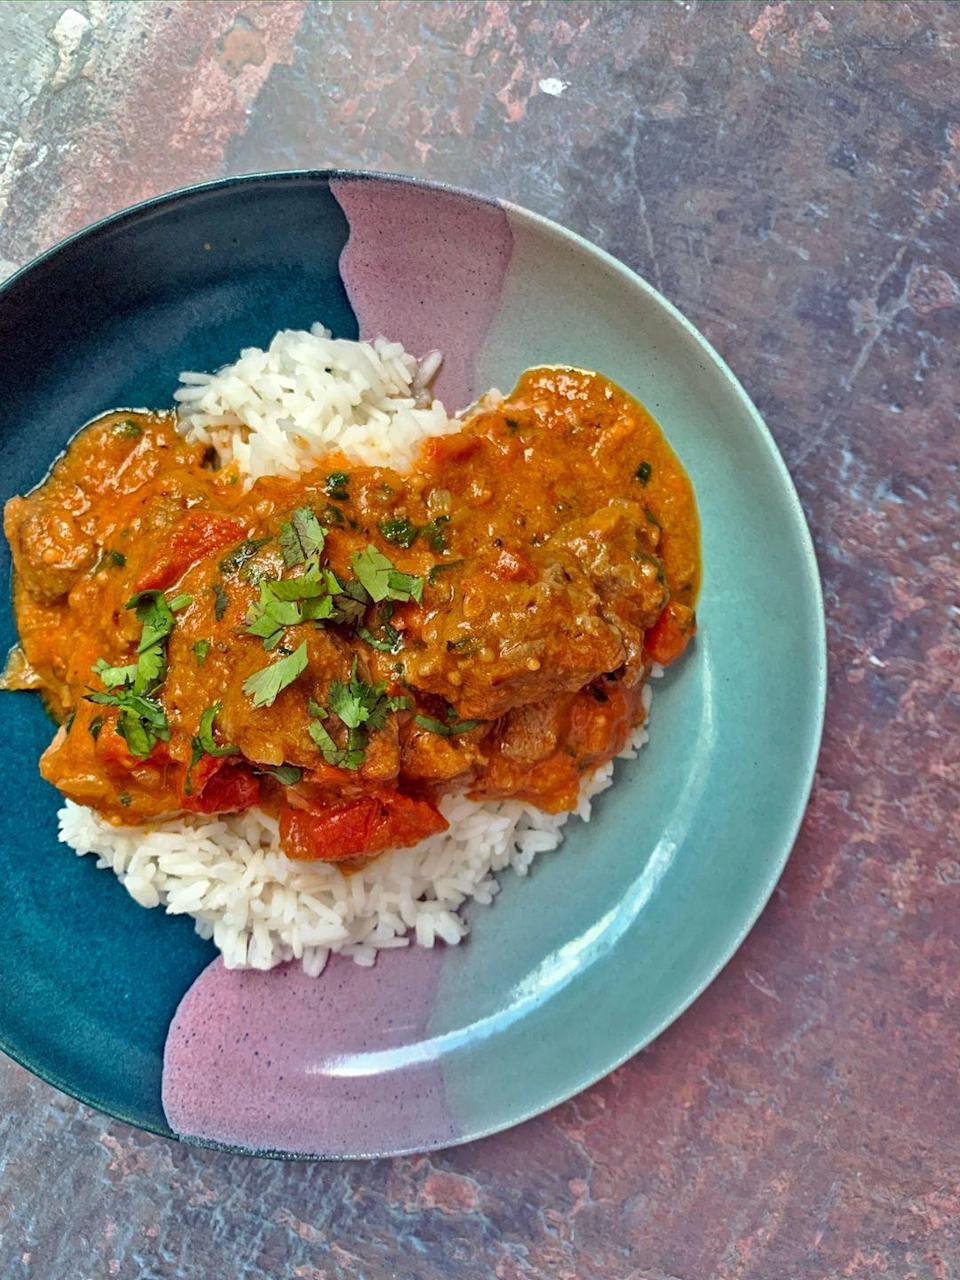 """<p>Lamb Karahi is one of our favourite <a href=""""https://www.delish.com/uk/cooking/recipes/g33455599/best-curry-recipes/"""" rel=""""nofollow noopener"""" target=""""_blank"""" data-ylk=""""slk:lamb curry"""" class=""""link rapid-noclick-resp"""">lamb curry</a> dishes, and we're telling you now, it is well worth the time and effort to make.</p><p>Get the <a href=""""https://www.delish.com/uk/cooking/recipes/a33642009/lamb-karahi/"""" rel=""""nofollow noopener"""" target=""""_blank"""" data-ylk=""""slk:Lamb Karahi"""" class=""""link rapid-noclick-resp"""">Lamb Karahi</a> recipe. </p>"""